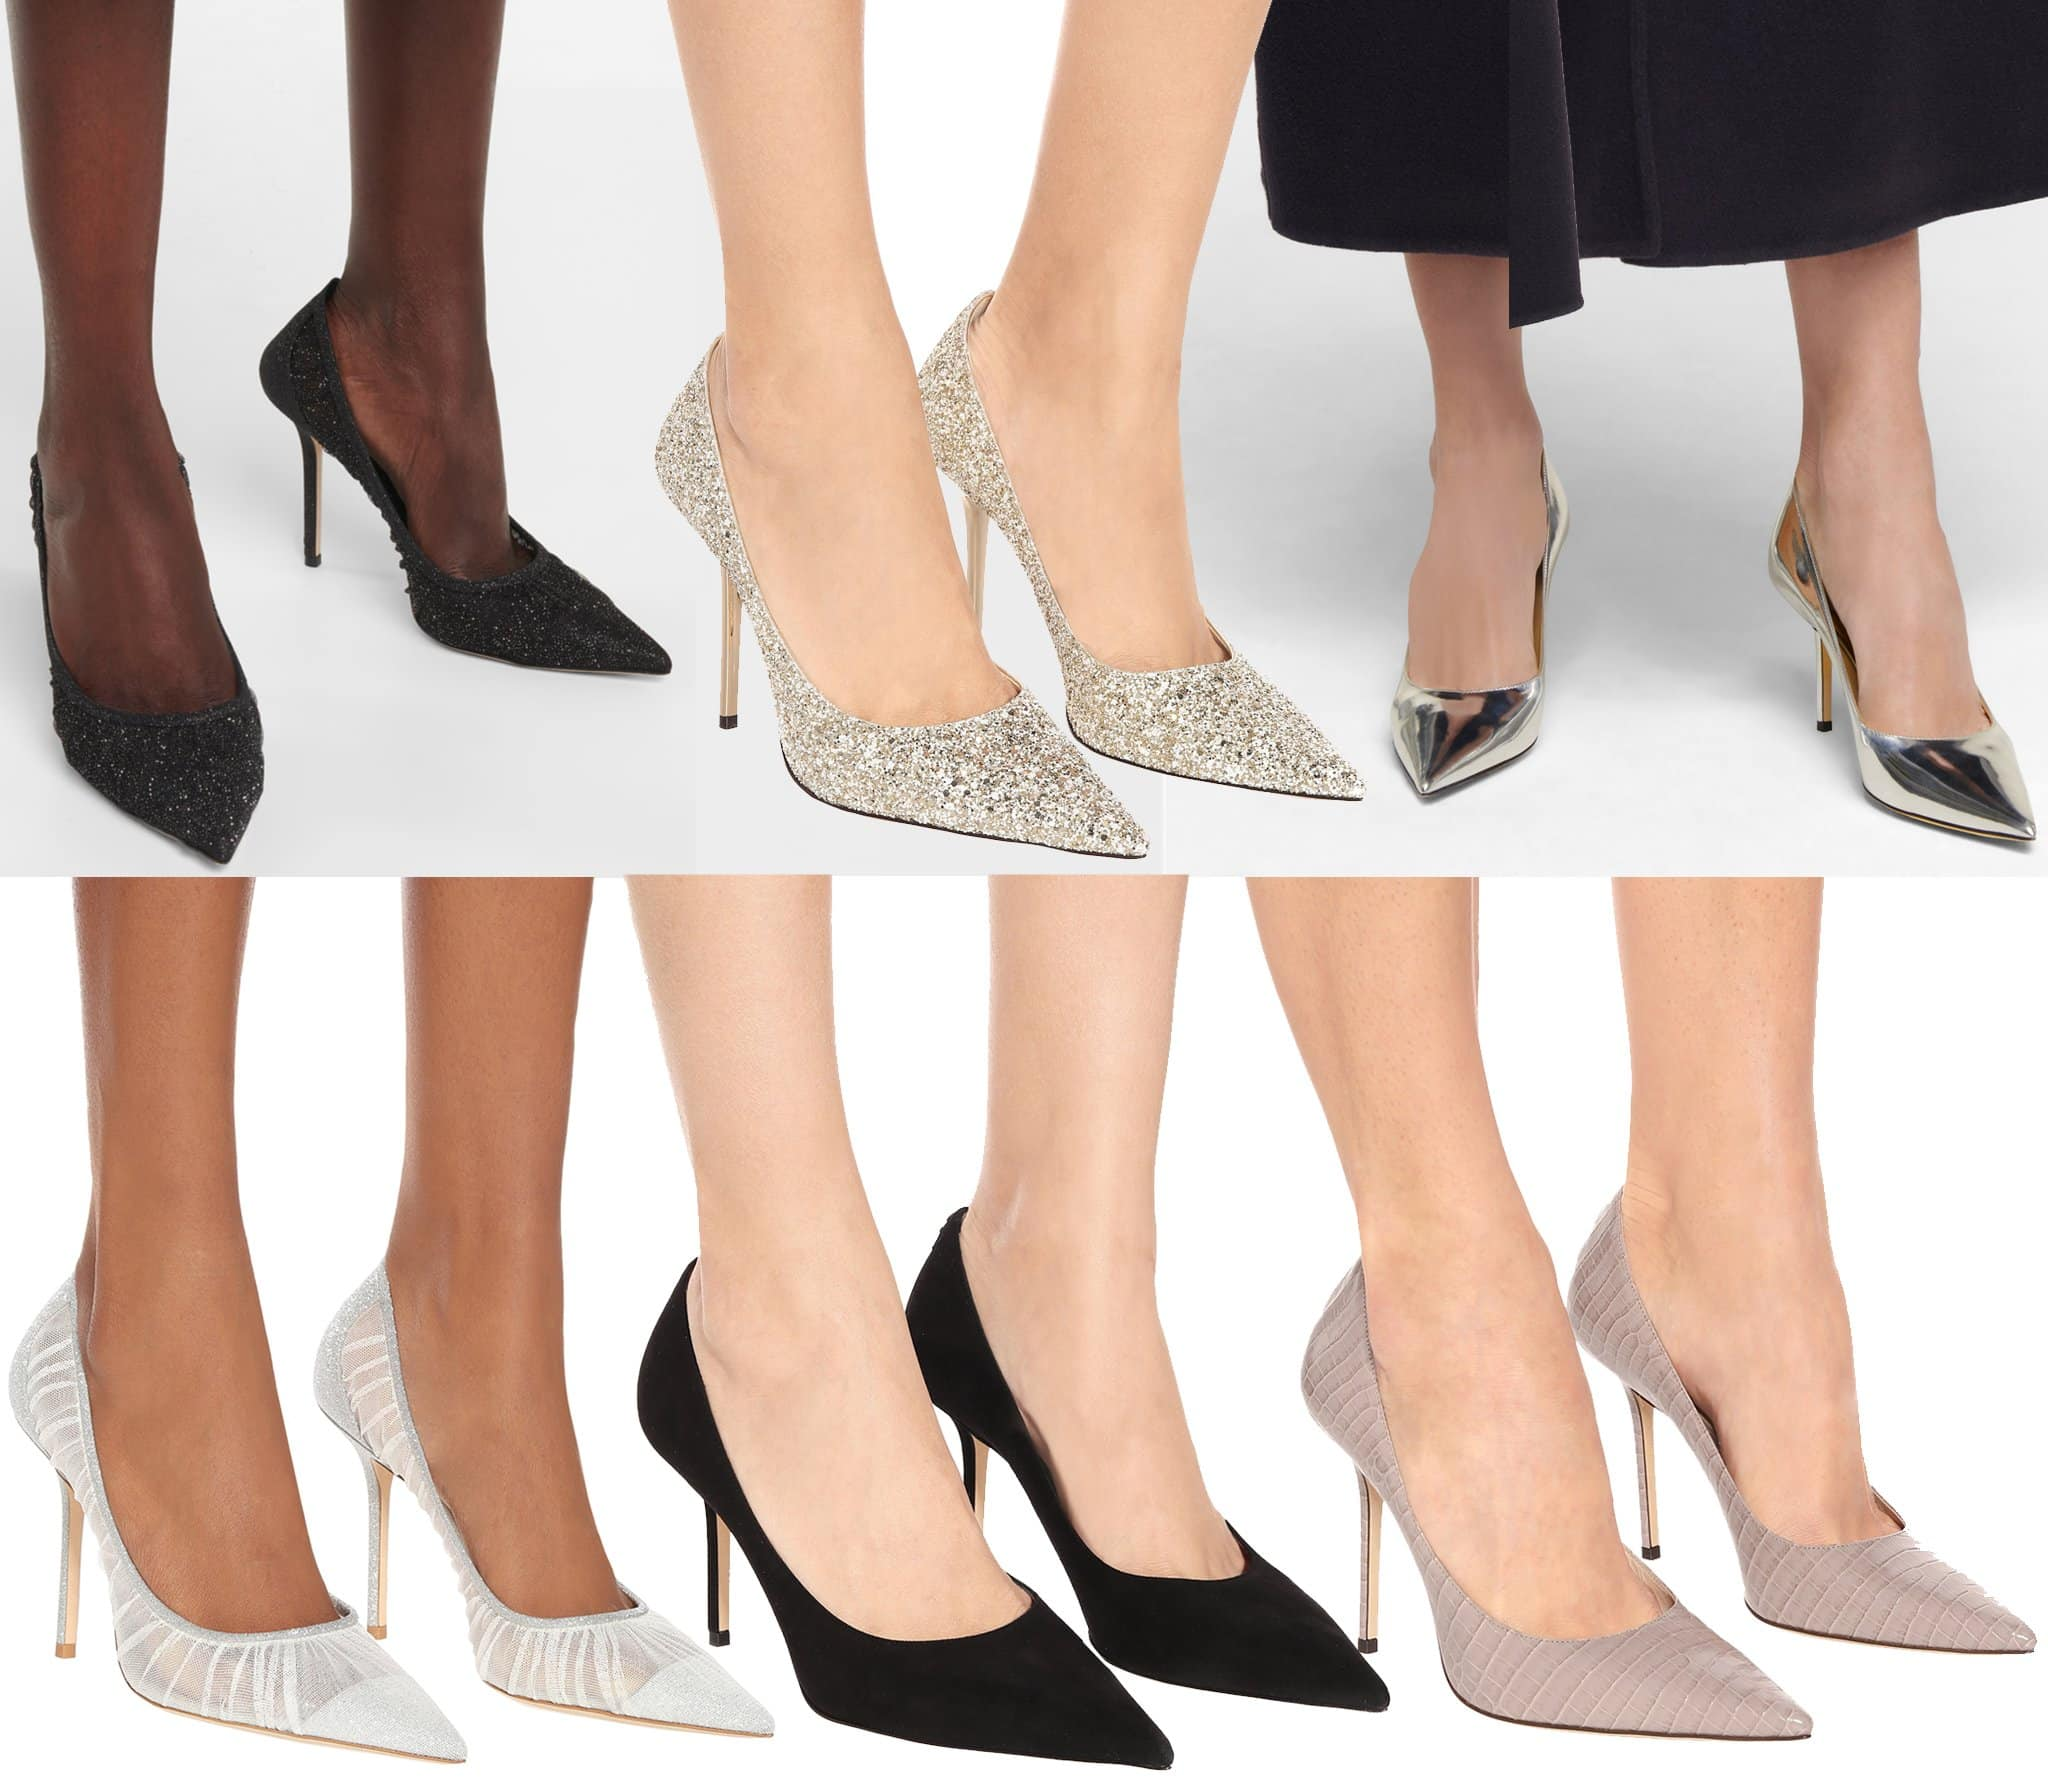 Defined by the pointed toes and high-cut silhouette, you can find the Love pumps in an array of versions— from leather to tulle, crystals, and glitters